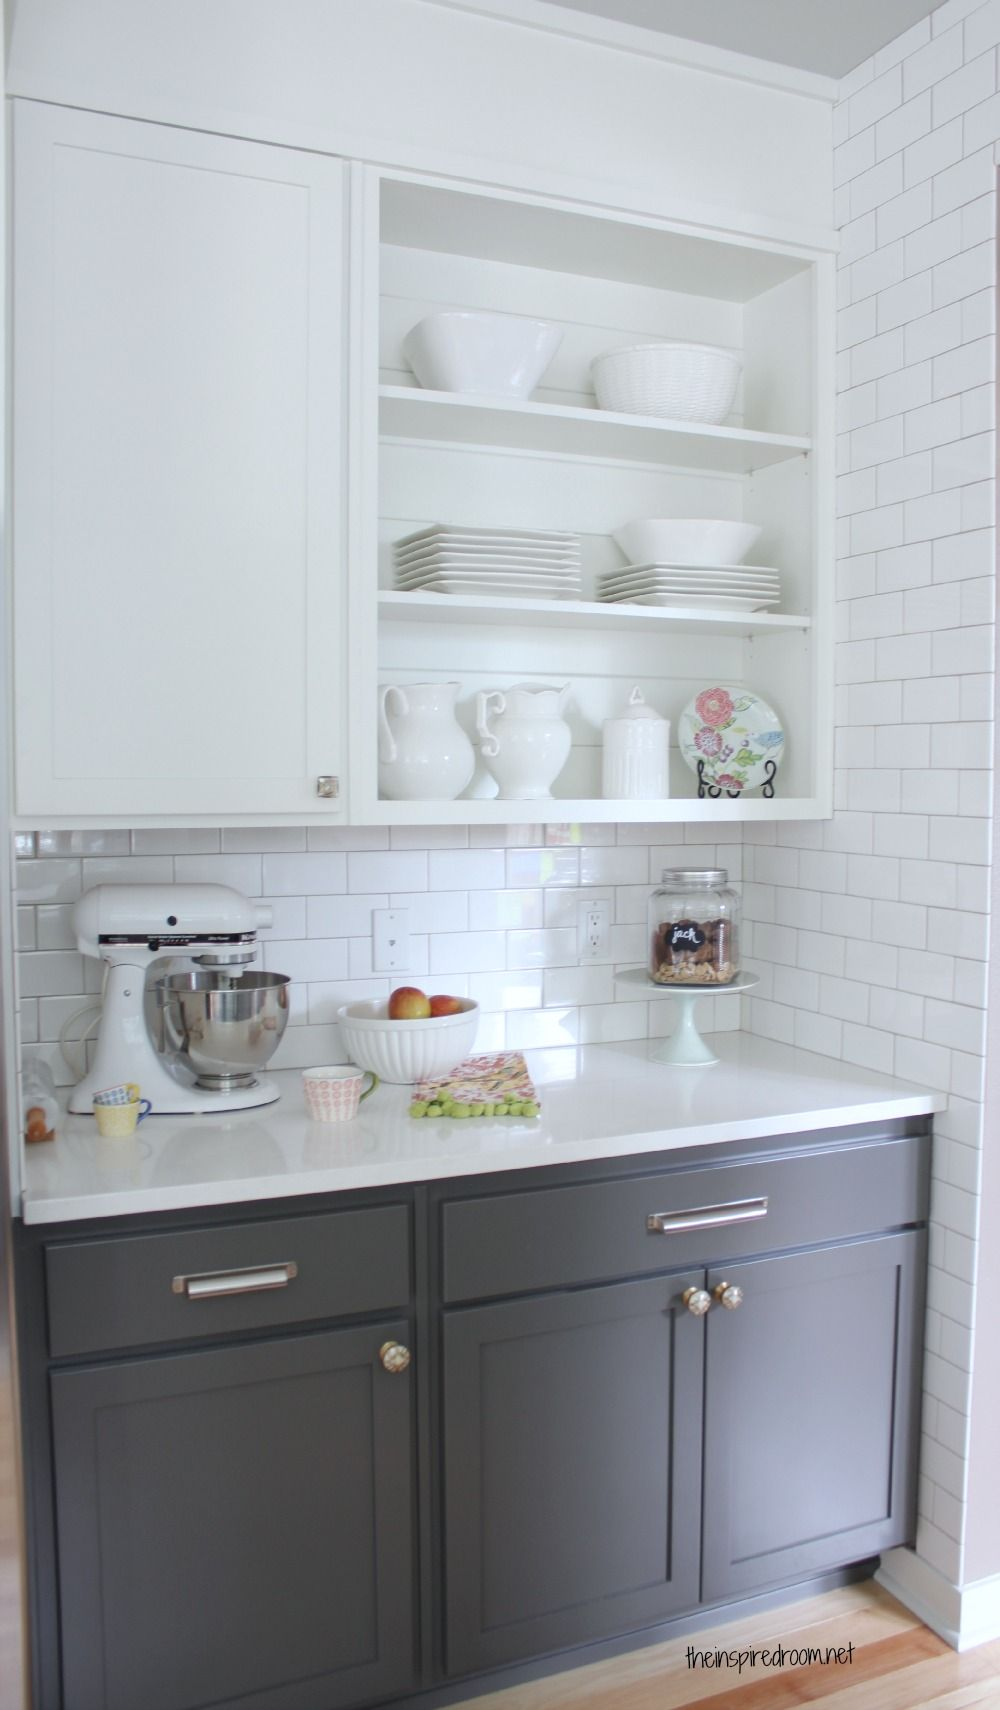 The Best White Paint Kitchen Cabinet Colors Kitchen Cabinets Grey Kitchen Cabinets